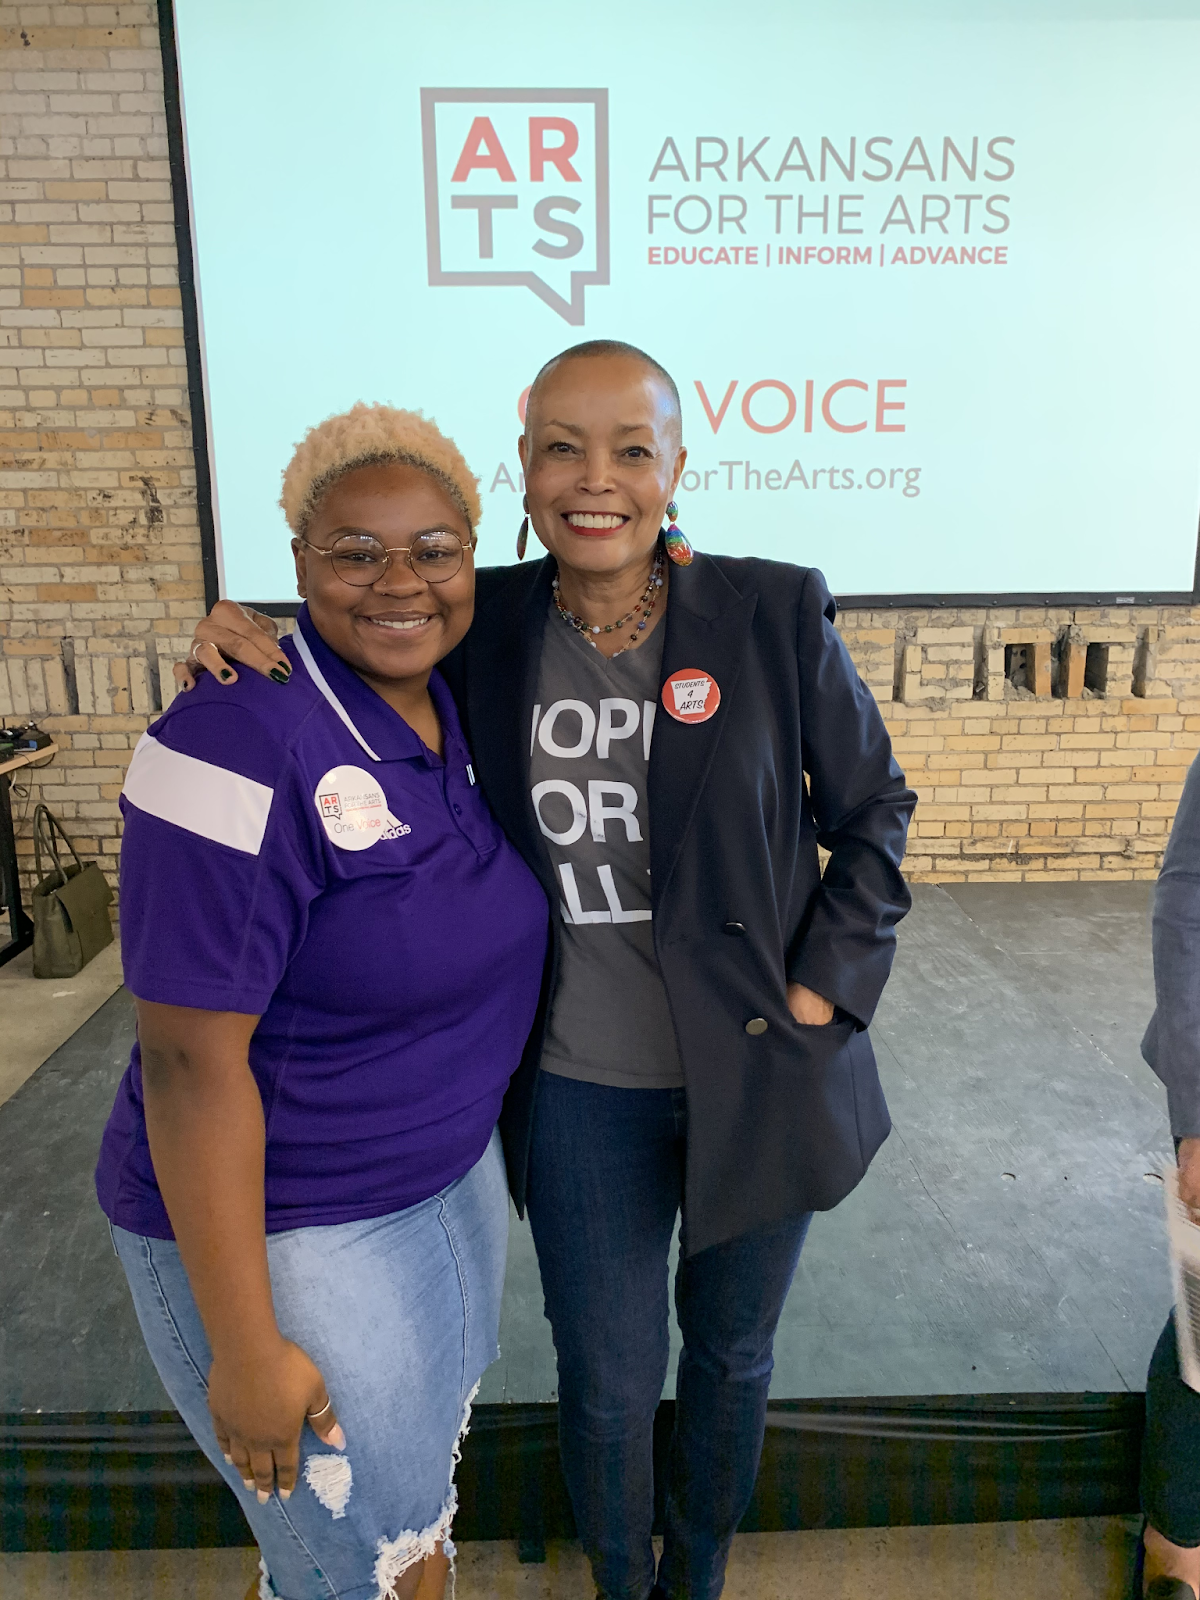 A college students in purple UCA shirt poses with state senator Joyce Elliot in front of a projector screen with the Arkansans for the Arts logo displayed prominently.